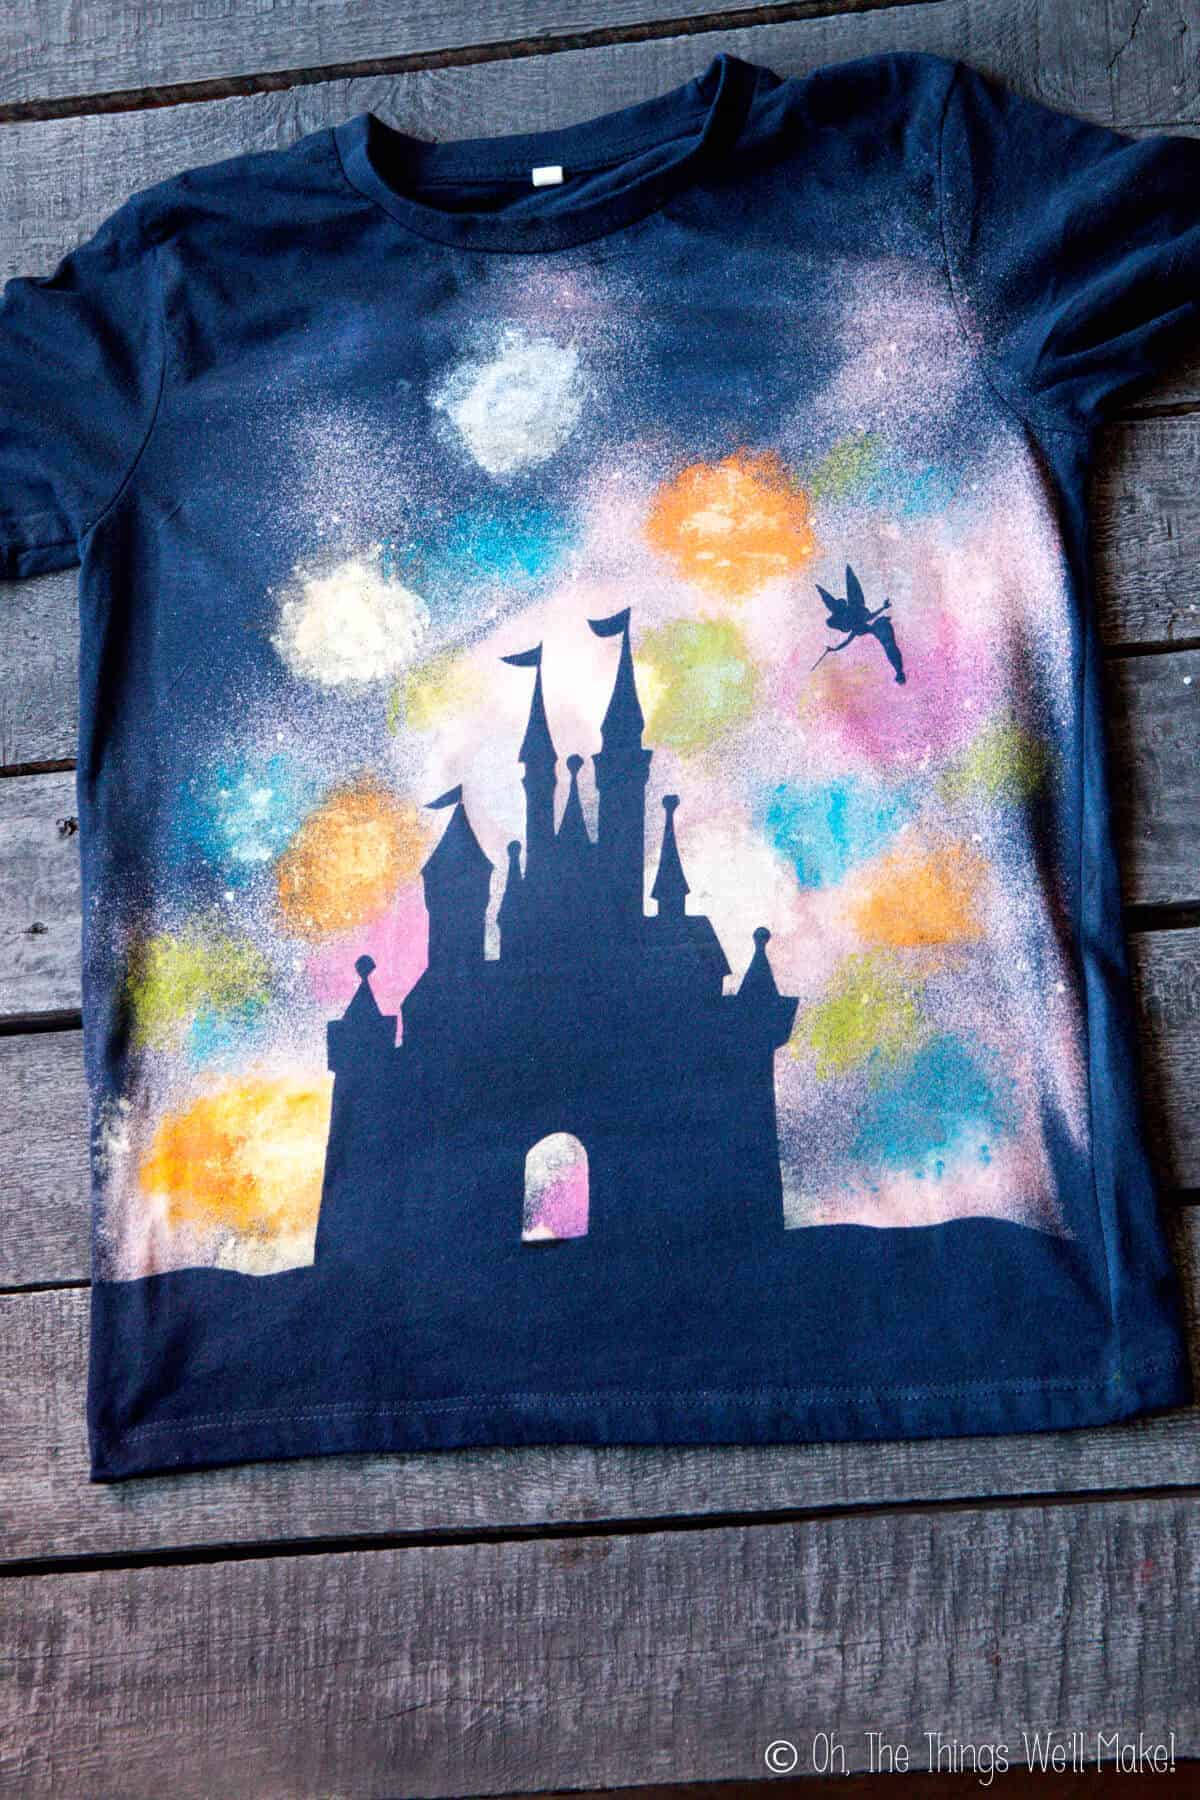 3cbe15c21322 Navy Blue t-shirt featuring a silhouette of a Disney castle and Tinkerbell  flying by